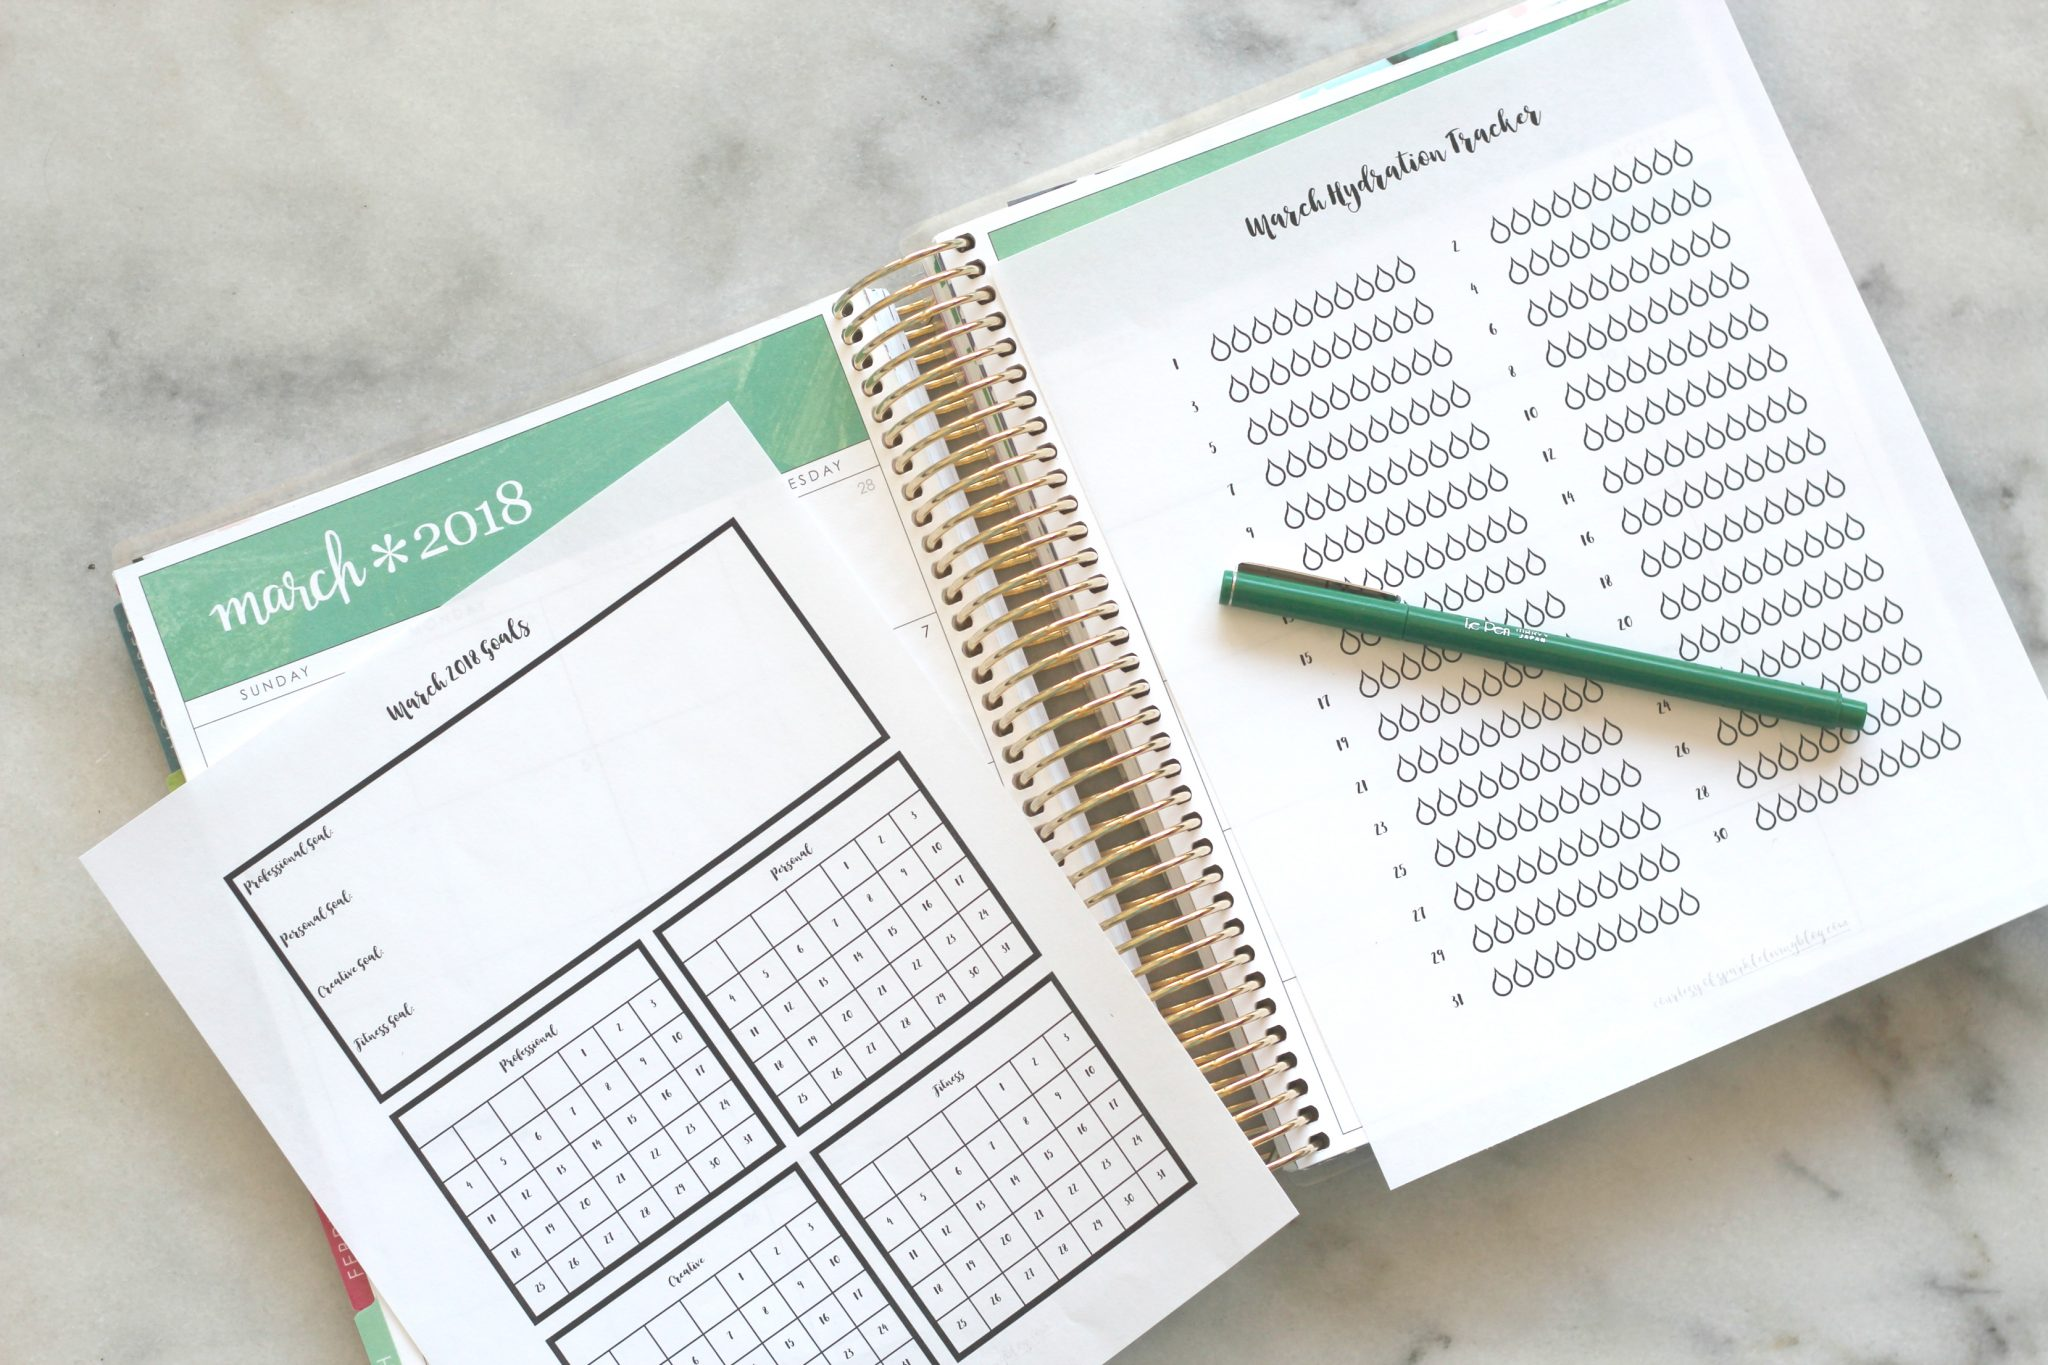 Stay on track of your goals with this free printable goal tracker for March 2018 and hydration tracker!